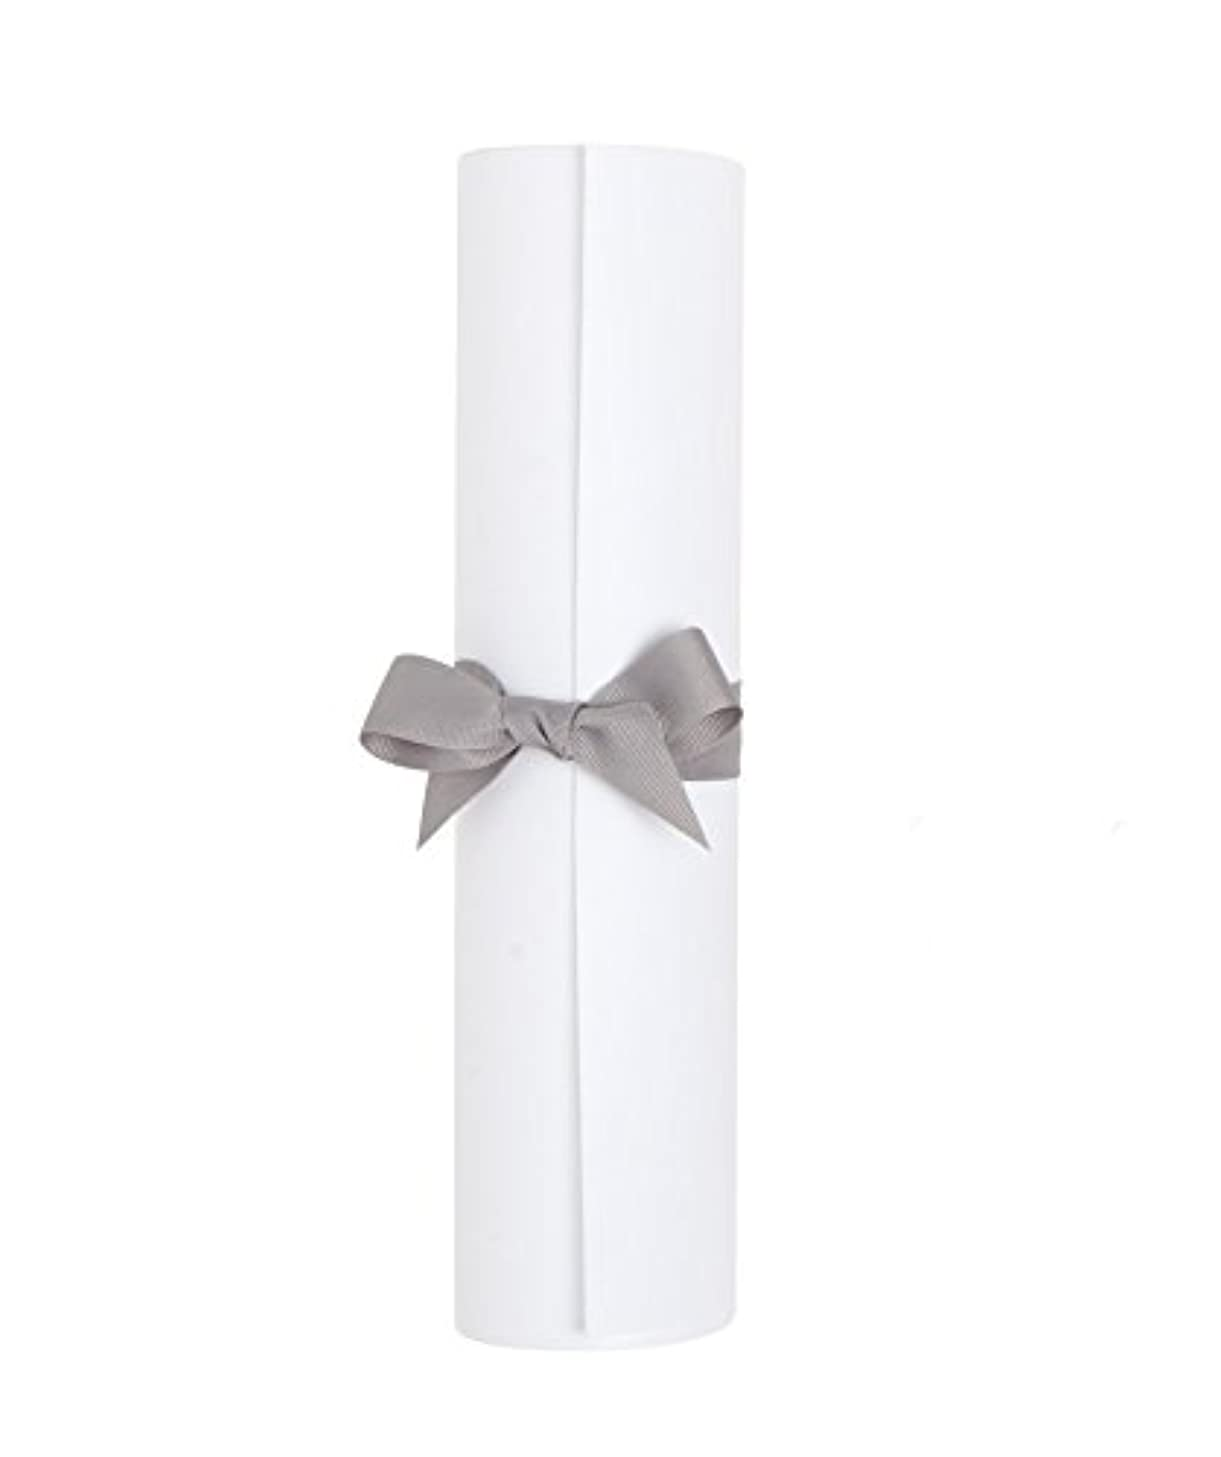 I like that lamp Adhesive Pressure Sensitive Styrene Sheet Making DIY Lampshades in a Pre-Cut Length - 15.5 inches High X 64 inches Wide